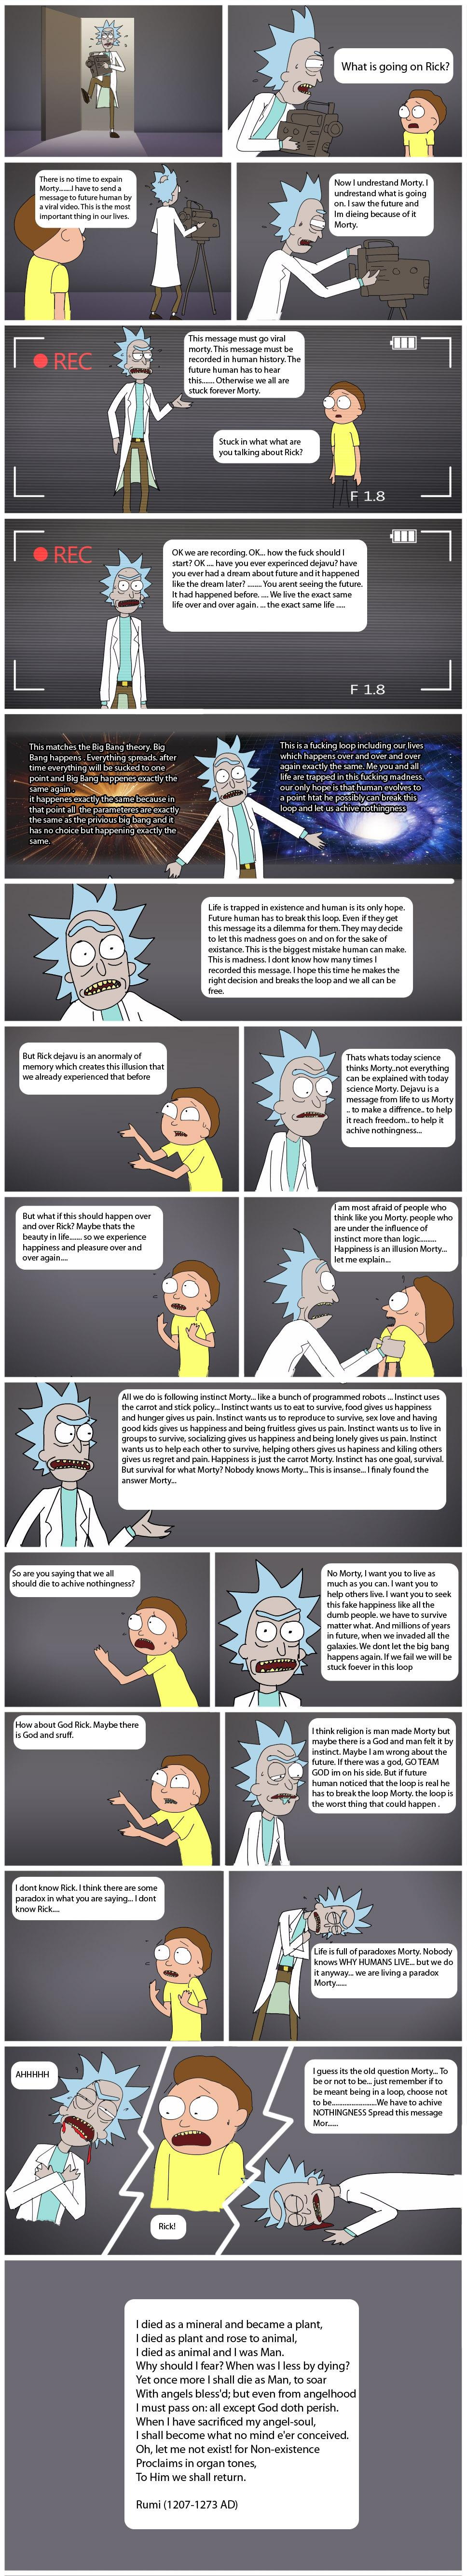 [Image] worth a read even if you aren't a Rick and Morty fan